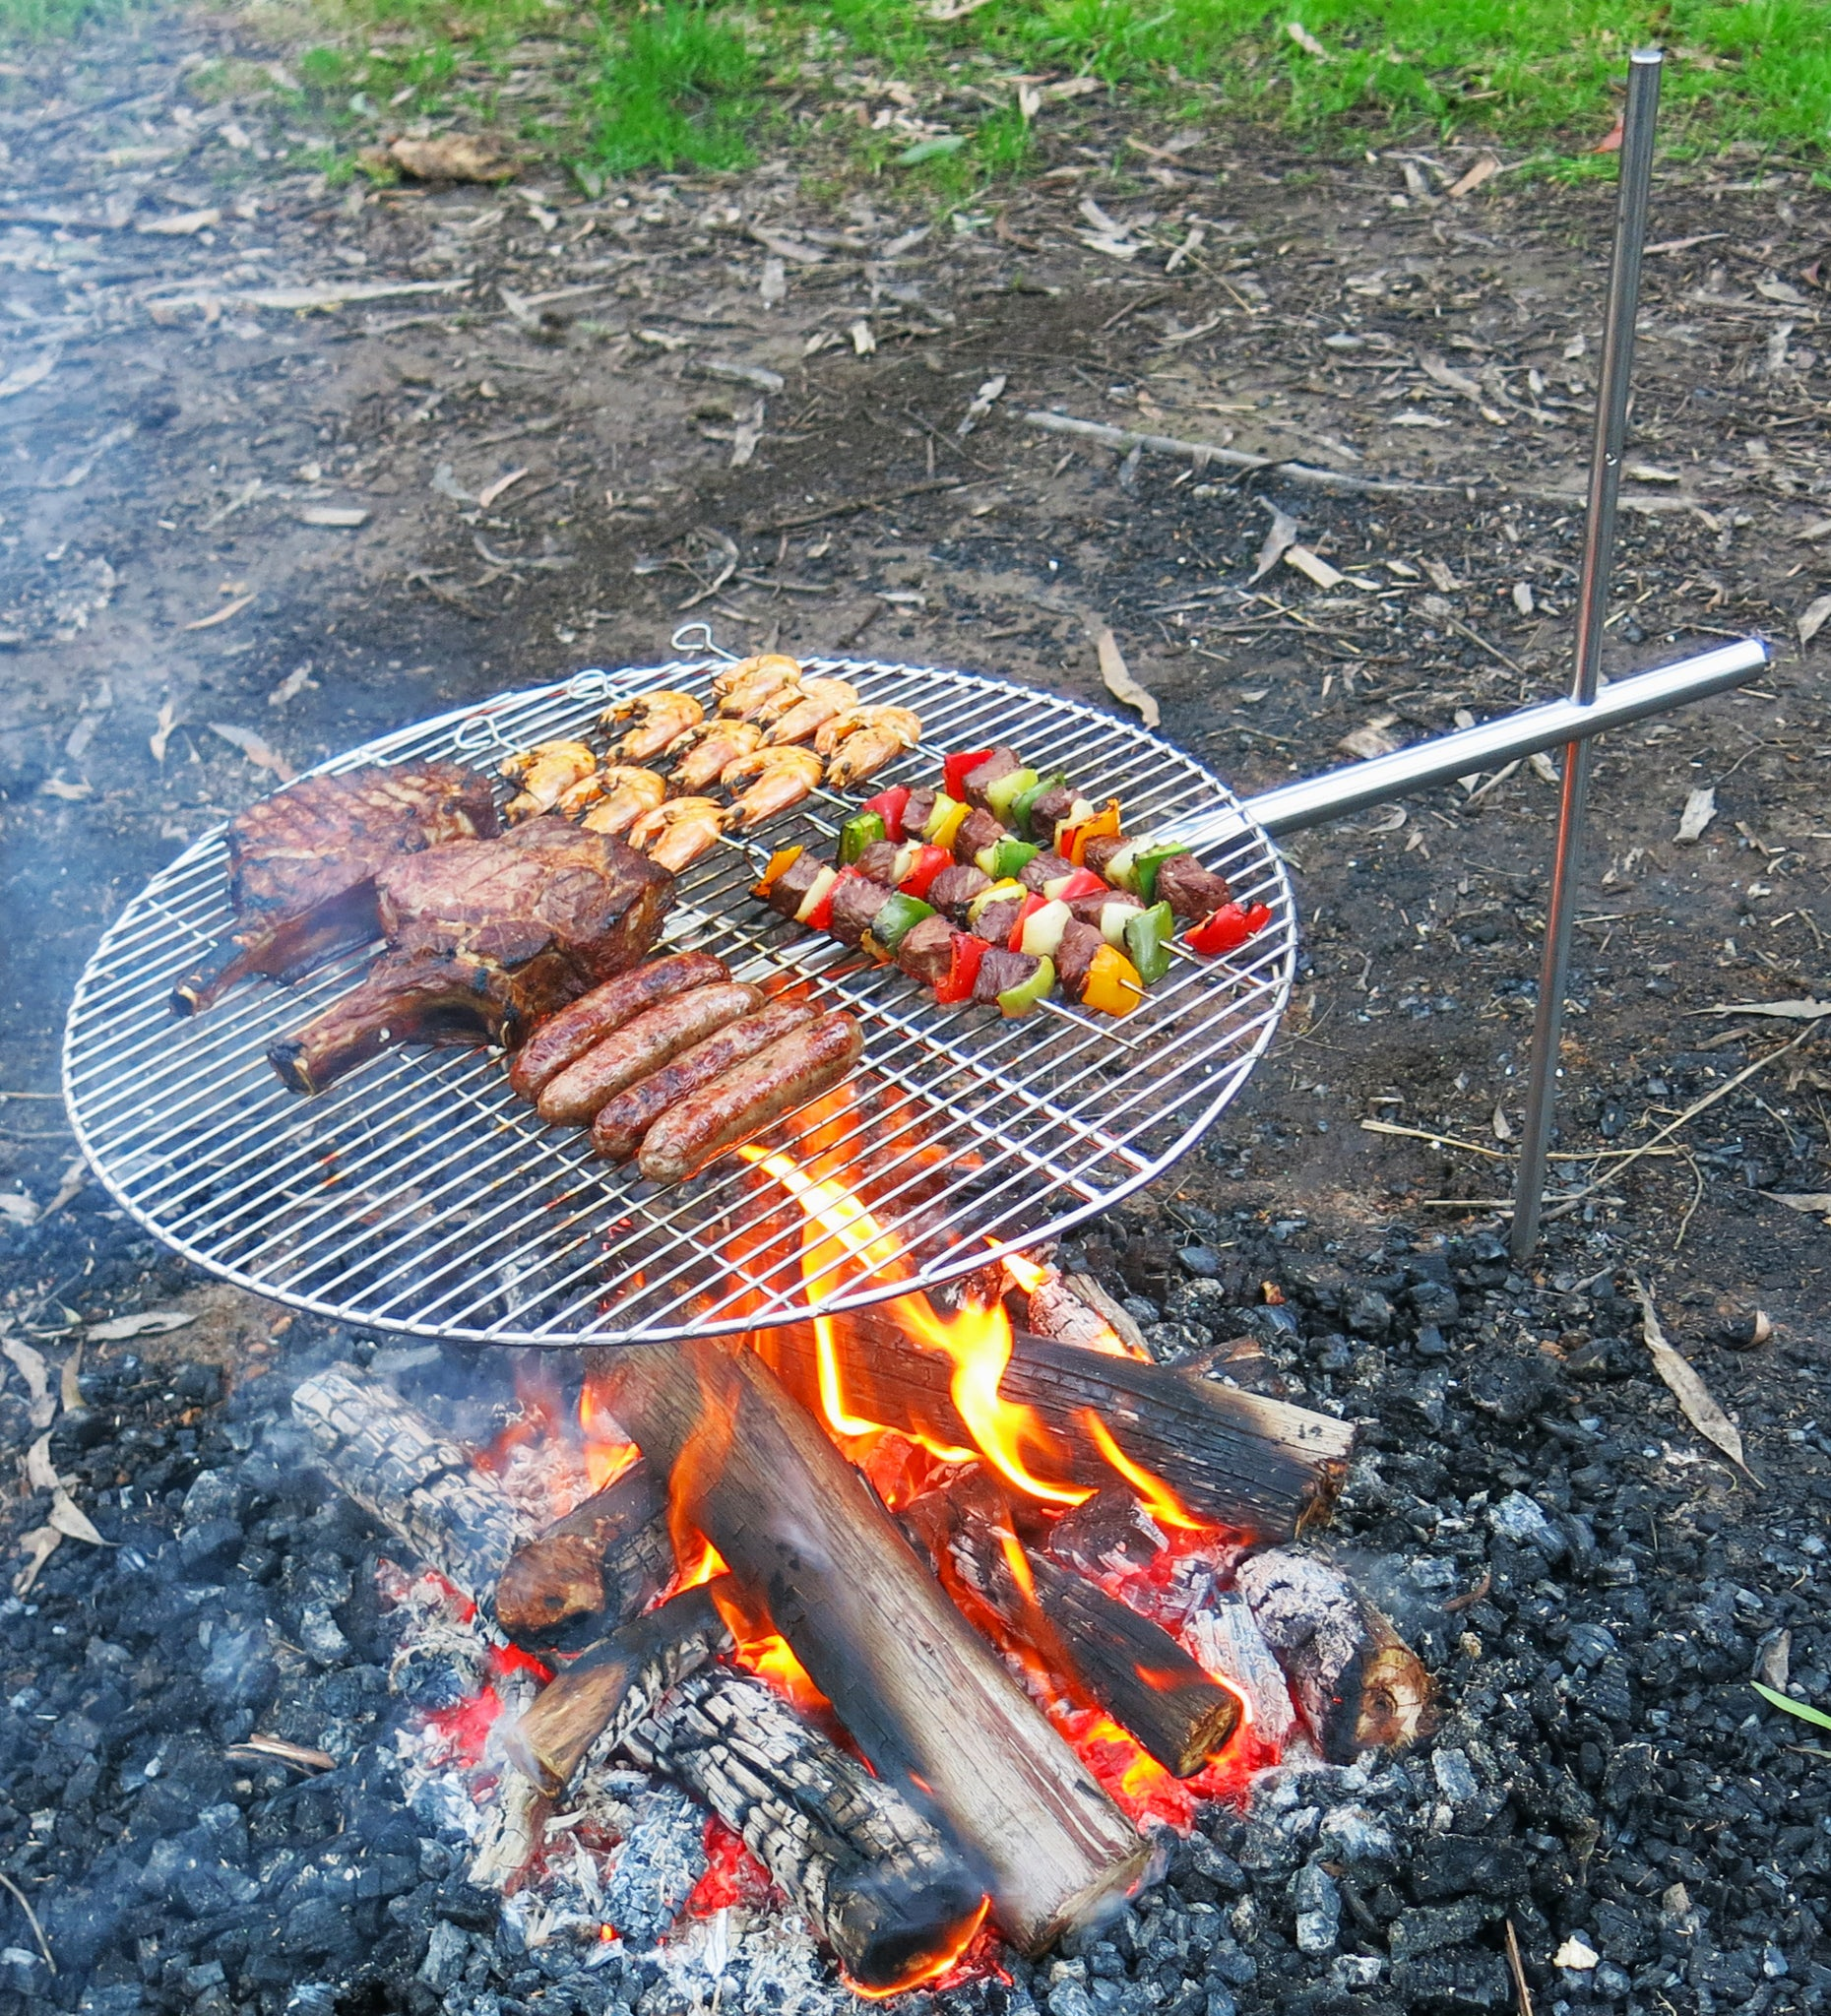 Best Stainless steel BBQ: Buy bbq with Stainless Steel Grill for Camping